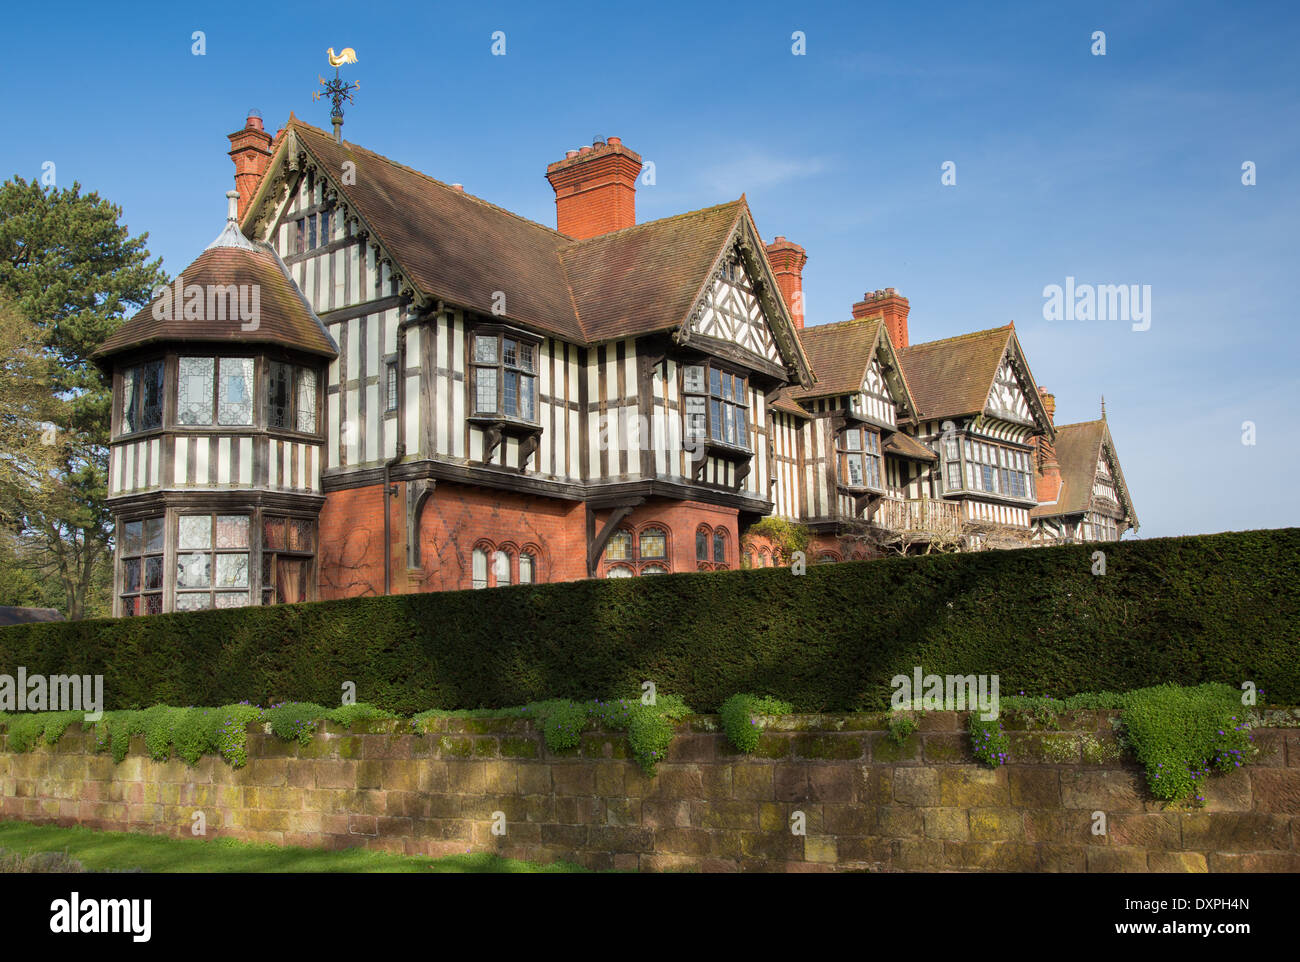 wightwick manor a victorian arts and crafts house influenced by stock photo royalty free image. Black Bedroom Furniture Sets. Home Design Ideas